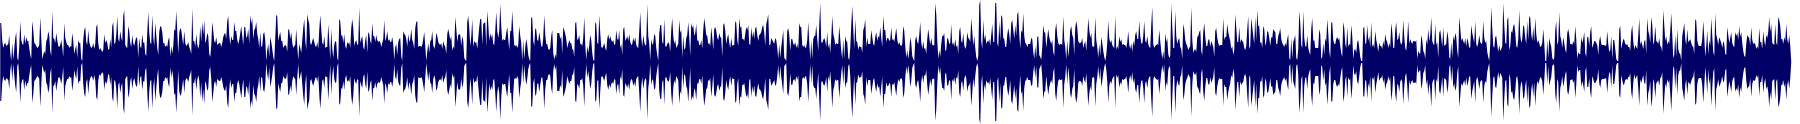 waveform of track #86654